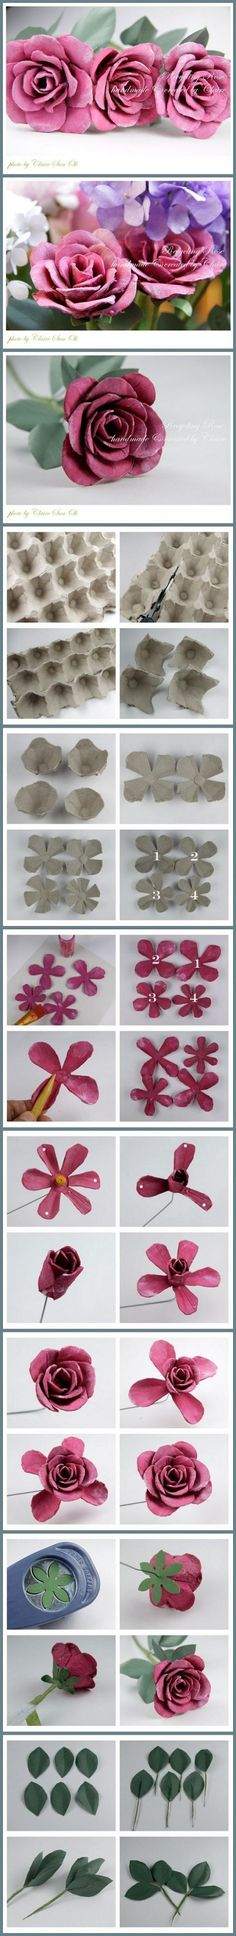 How to recycle Egg packing Boxes into beautiful rose flowers step by step DIY tutorial instructions / How To Instructions